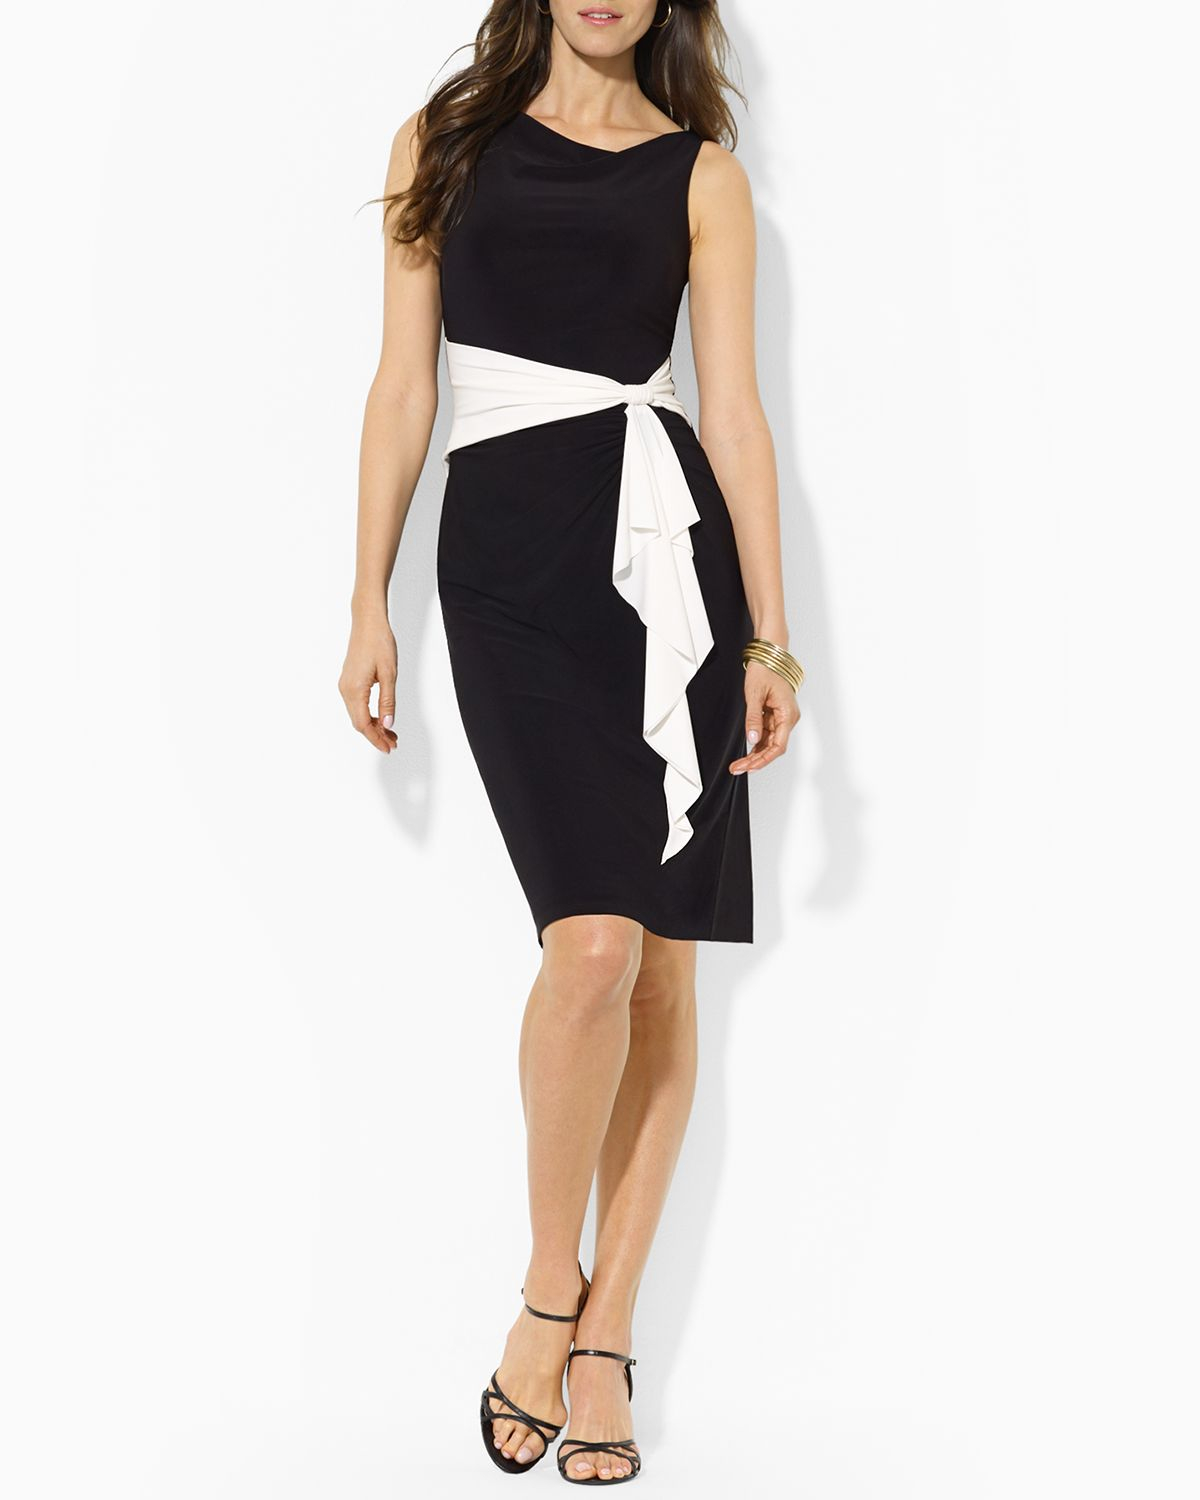 Ralph Lauren Black And White Dresses